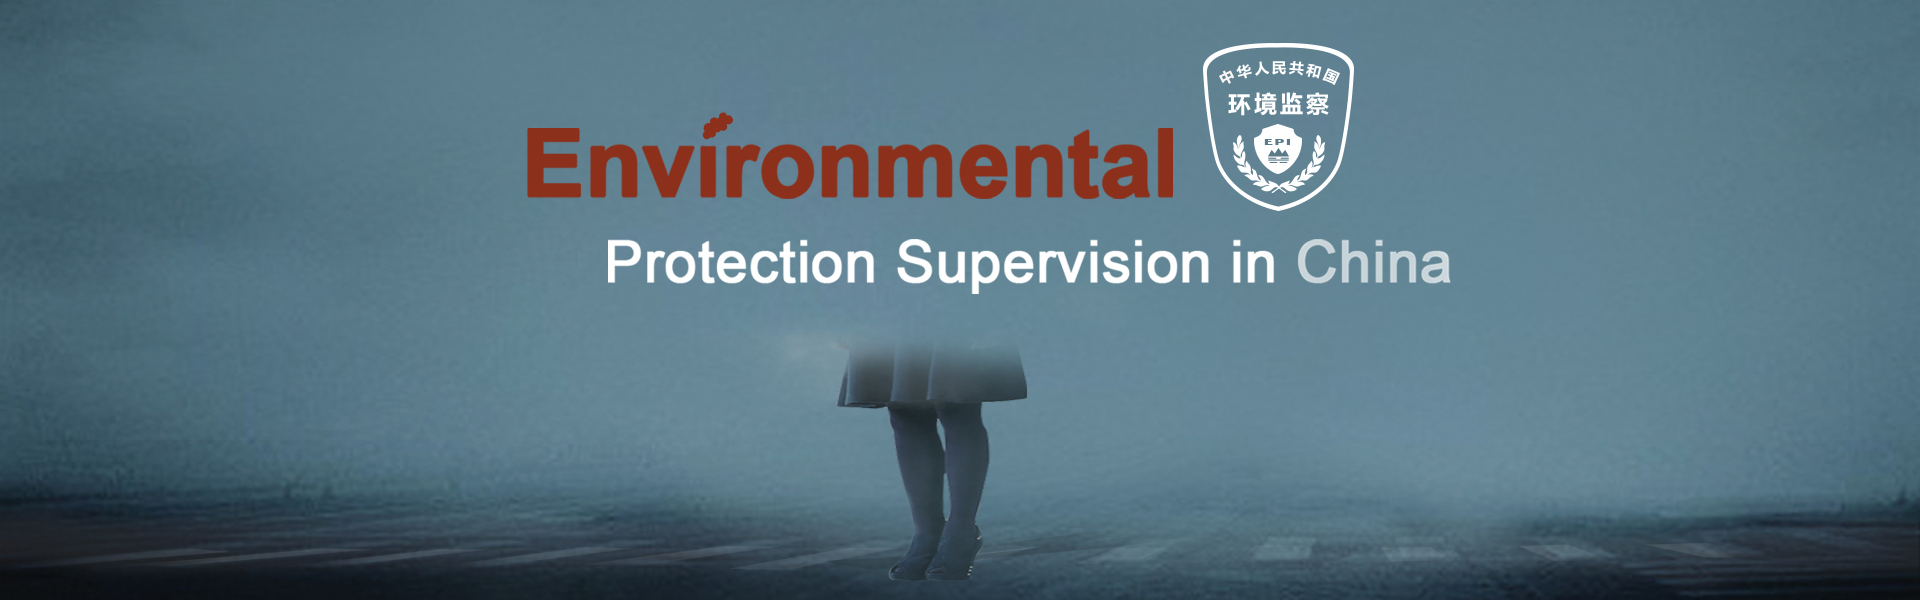 environmental protection supervision in China